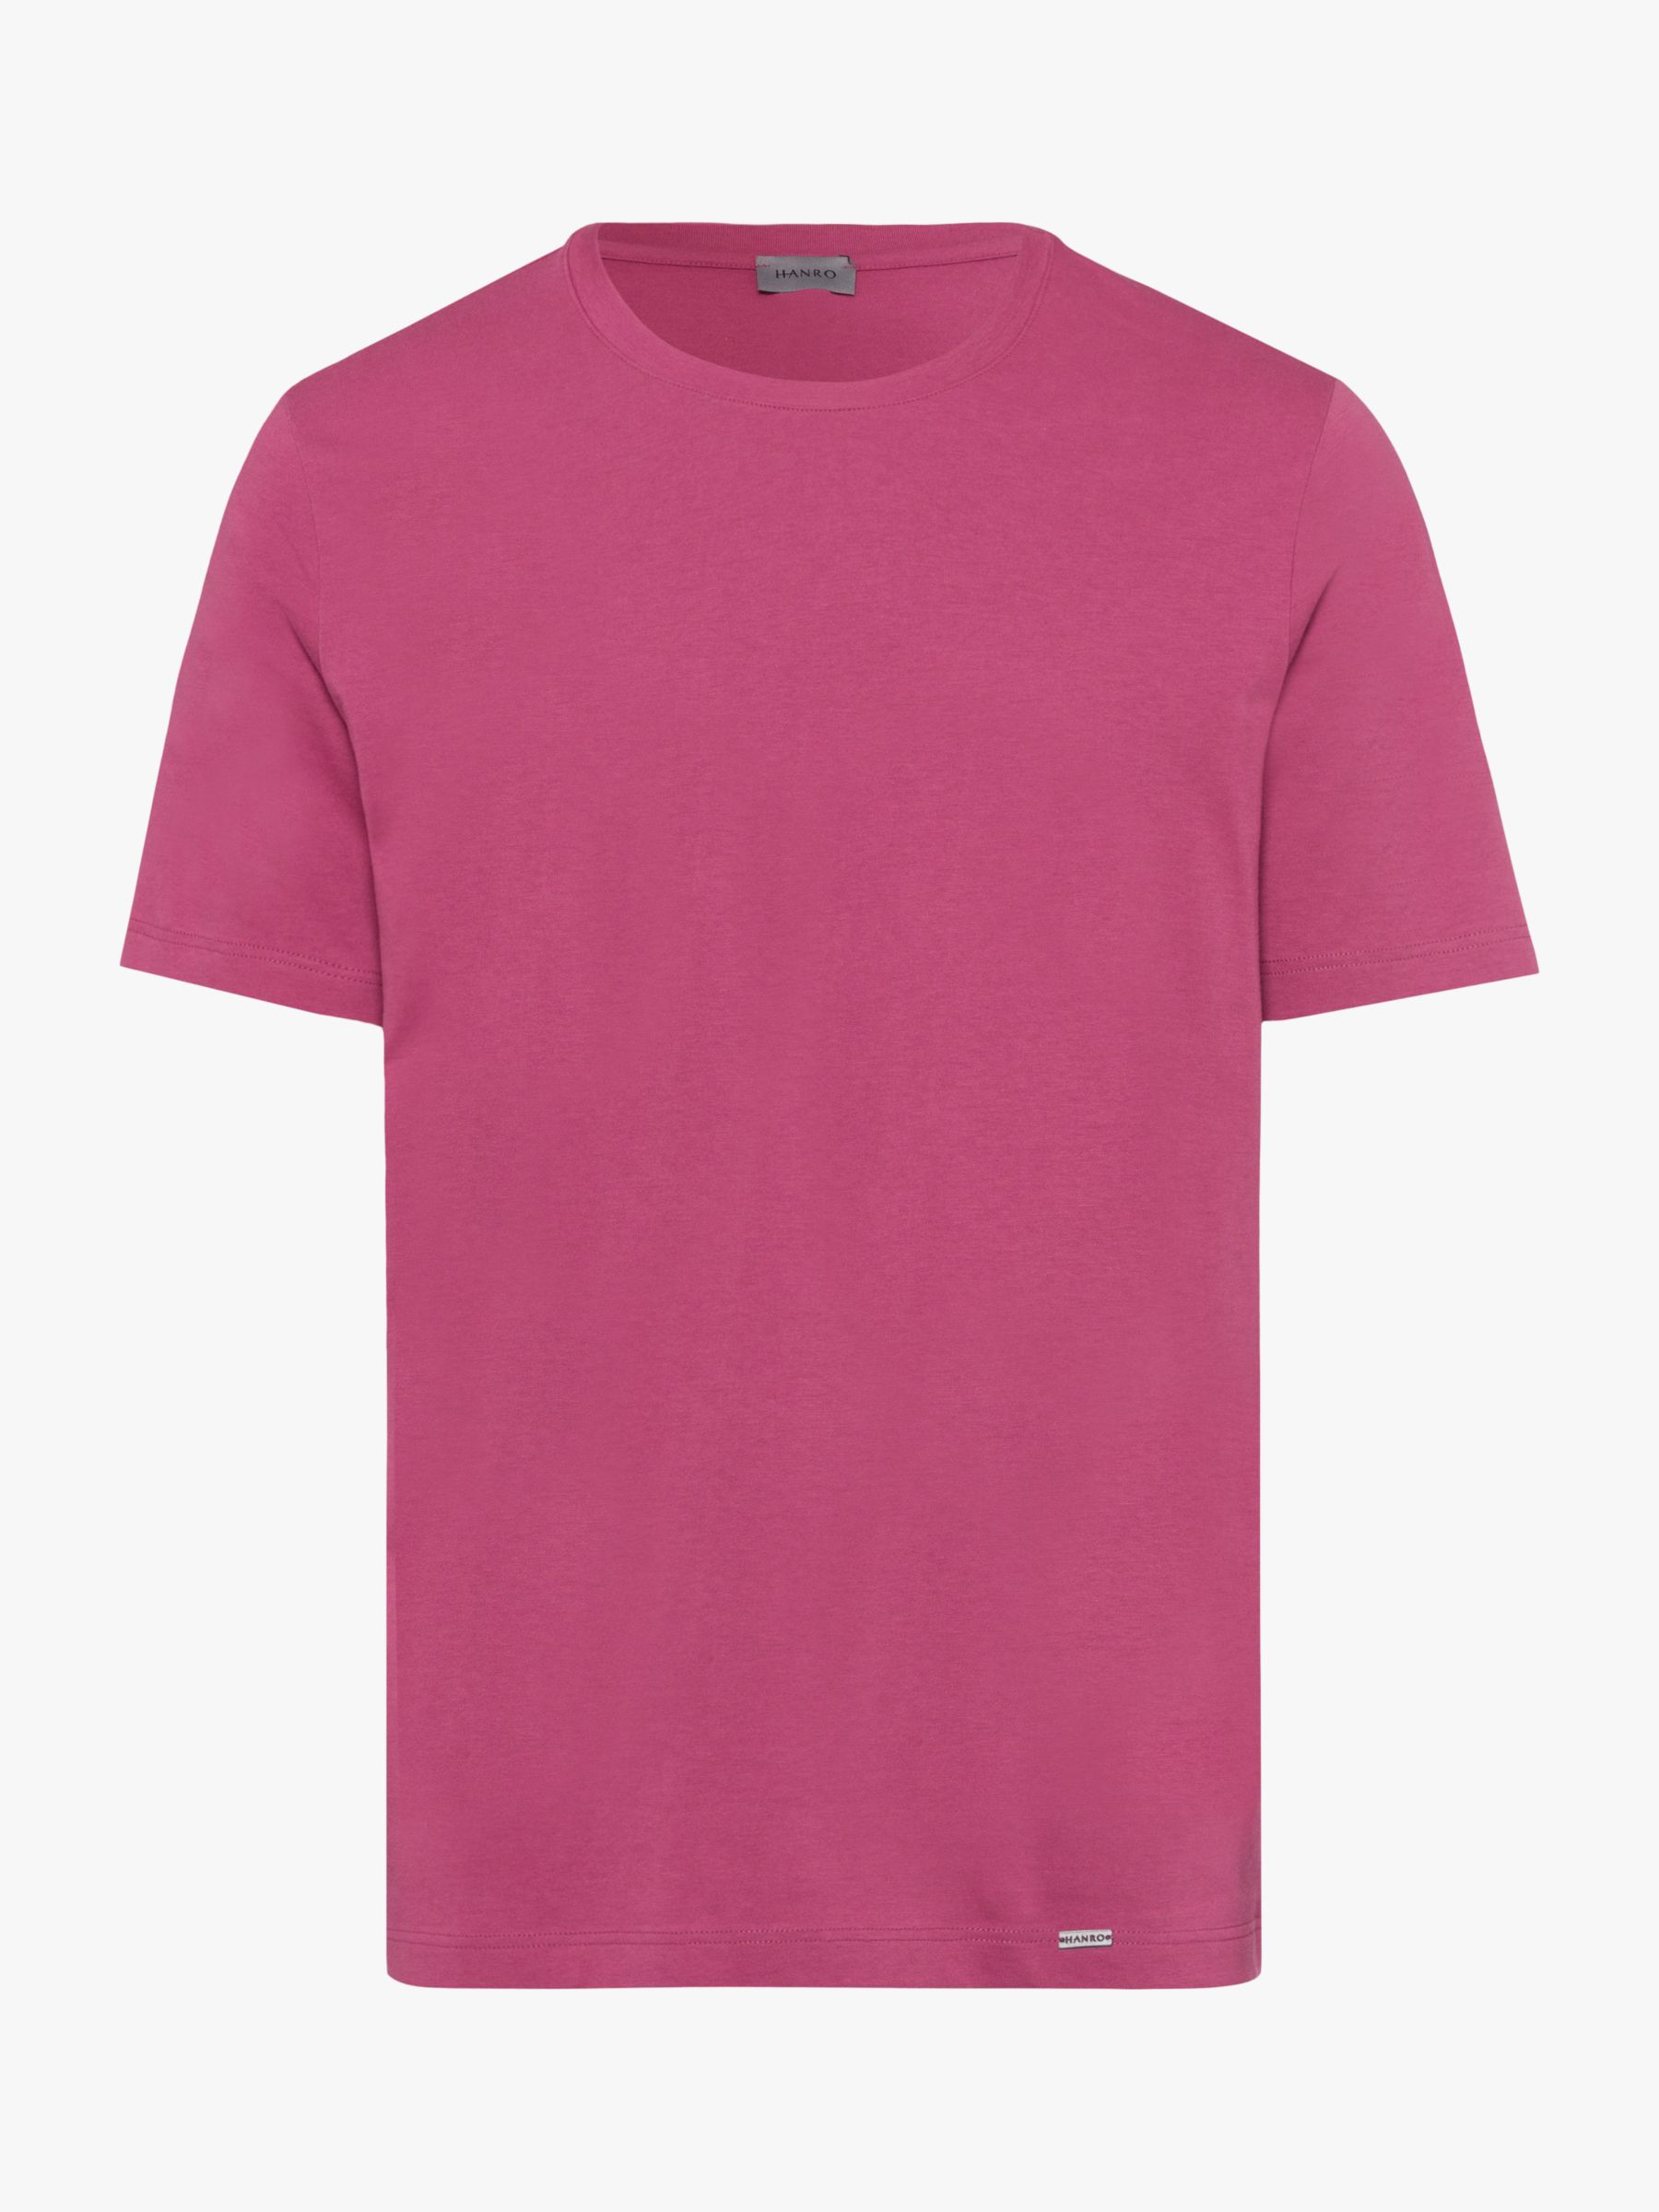 Hanro Hanro Cotton Jersey Lounge T-Shirt